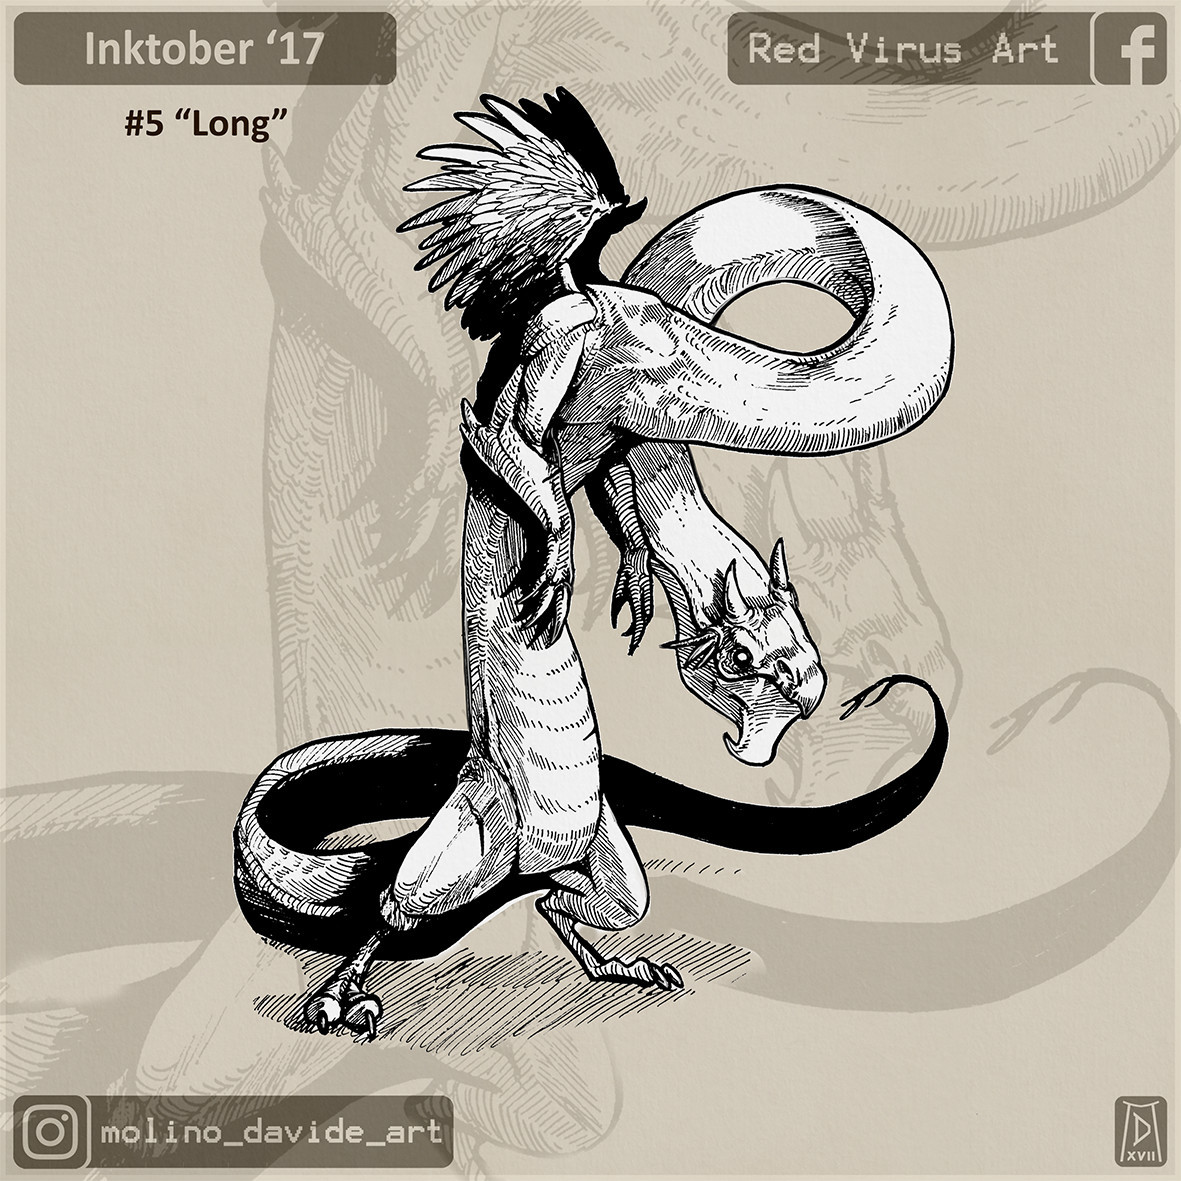 Seriously... Dragon and goblin are very usefull for an inktober challenge... easily adapted... and nice to draw!